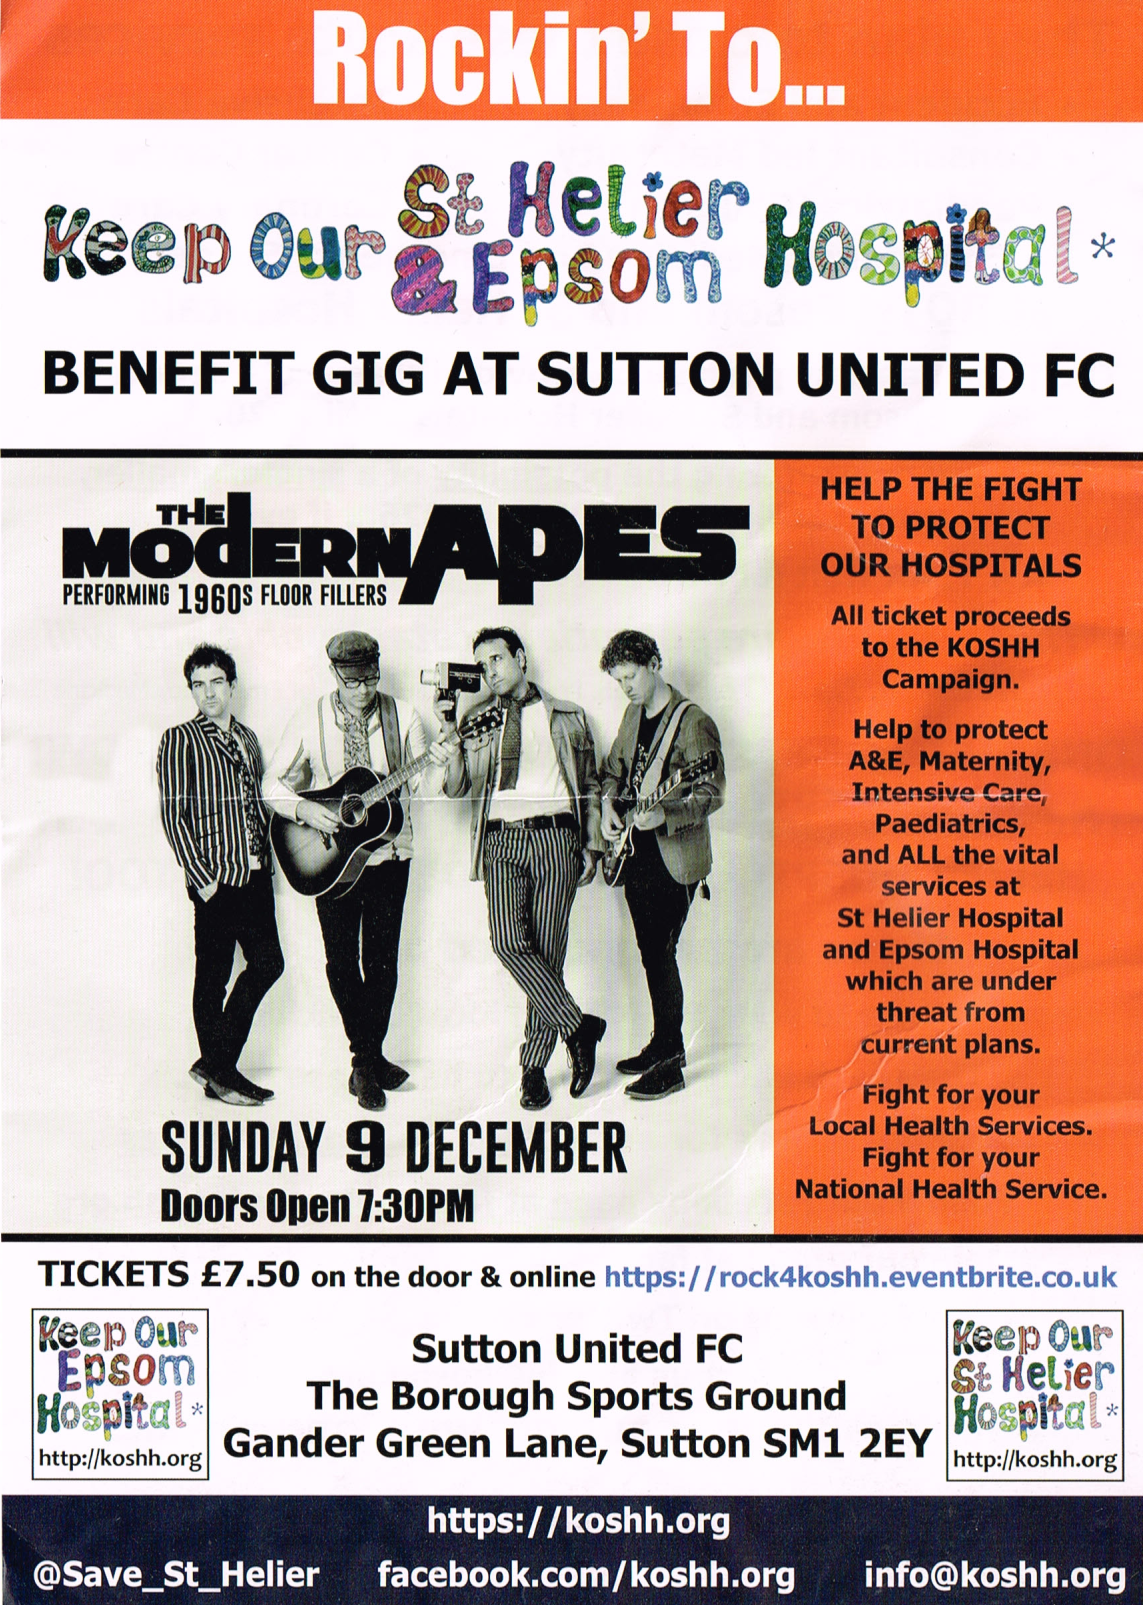 Keep Our St Helier Hospital Benfit Gig At Sutton United FC